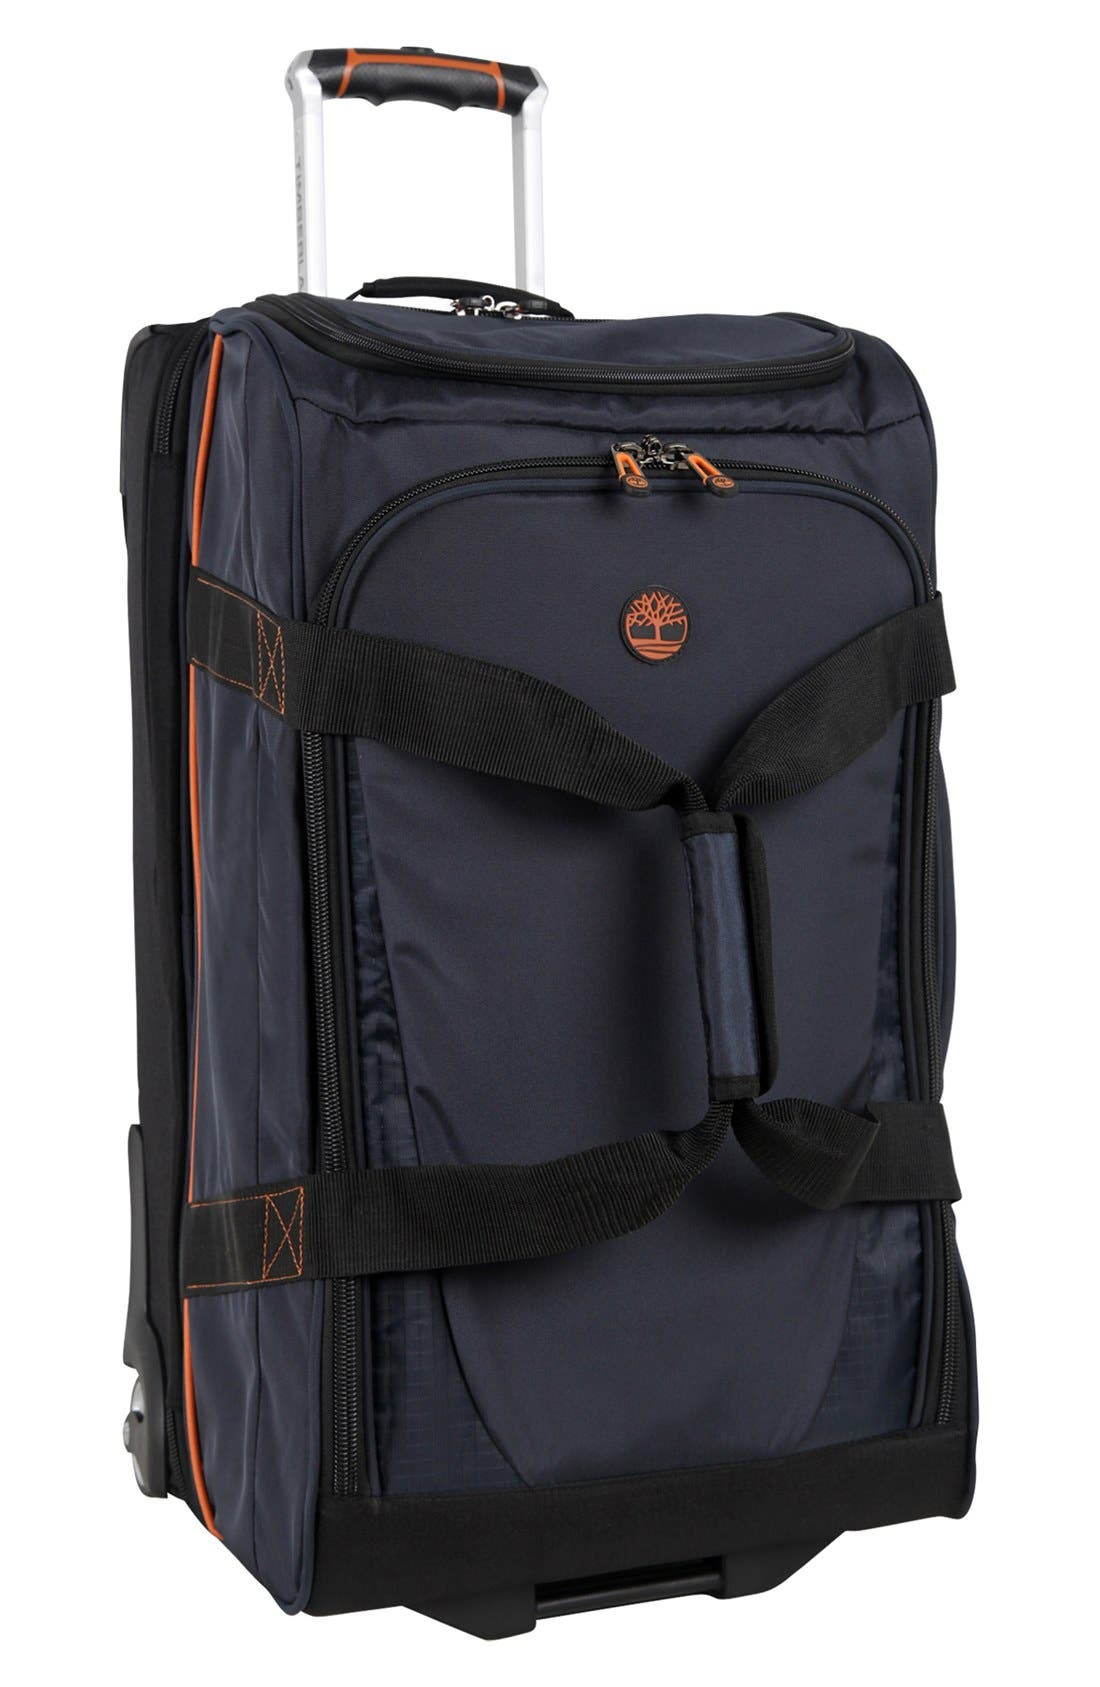 Alternate Image 1 Selected - Timberland 'Mascoma' Rolling Duffel Bag (26 Inch)